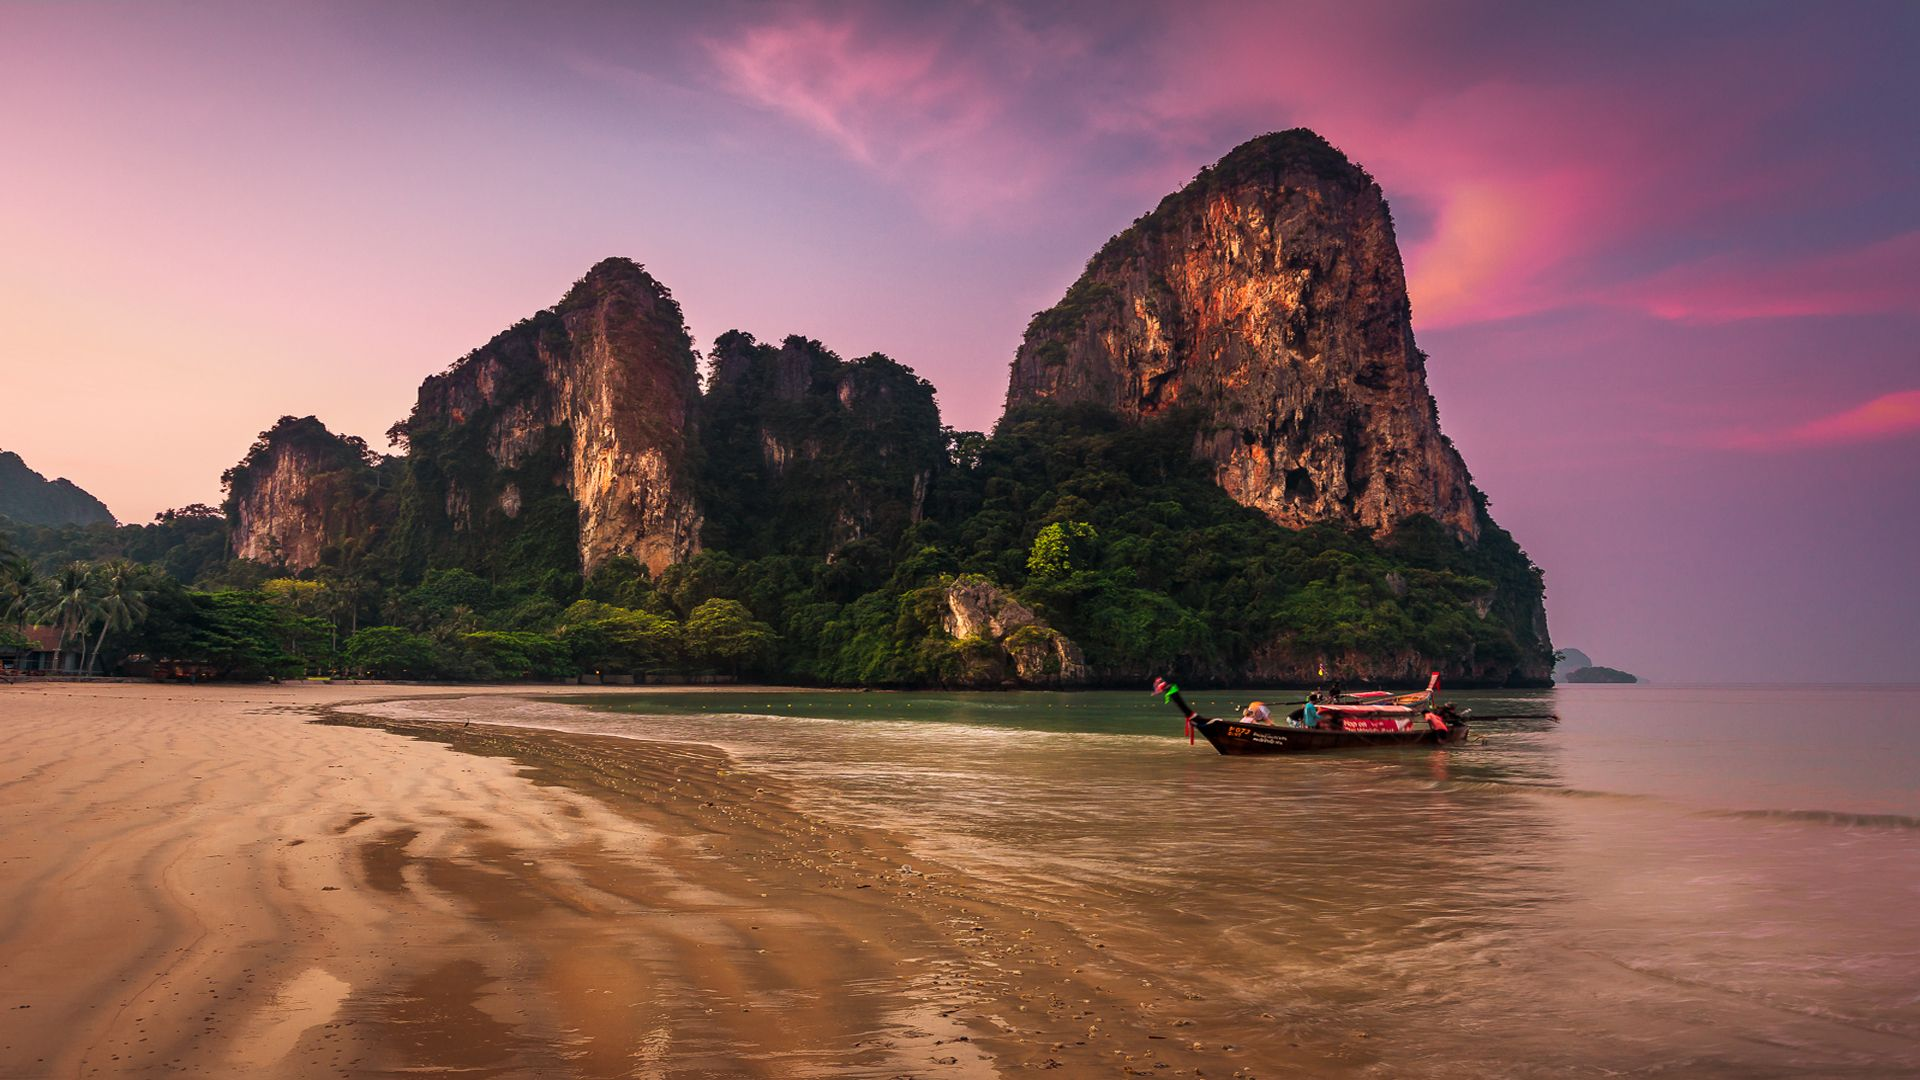 The Beach At Krabi Thailand 1920x1080 Need Iphone 6s Plus Wallpaper Background For Ipho Photography Wallpaper Nature Desktop Wallpaper Nature Pictures